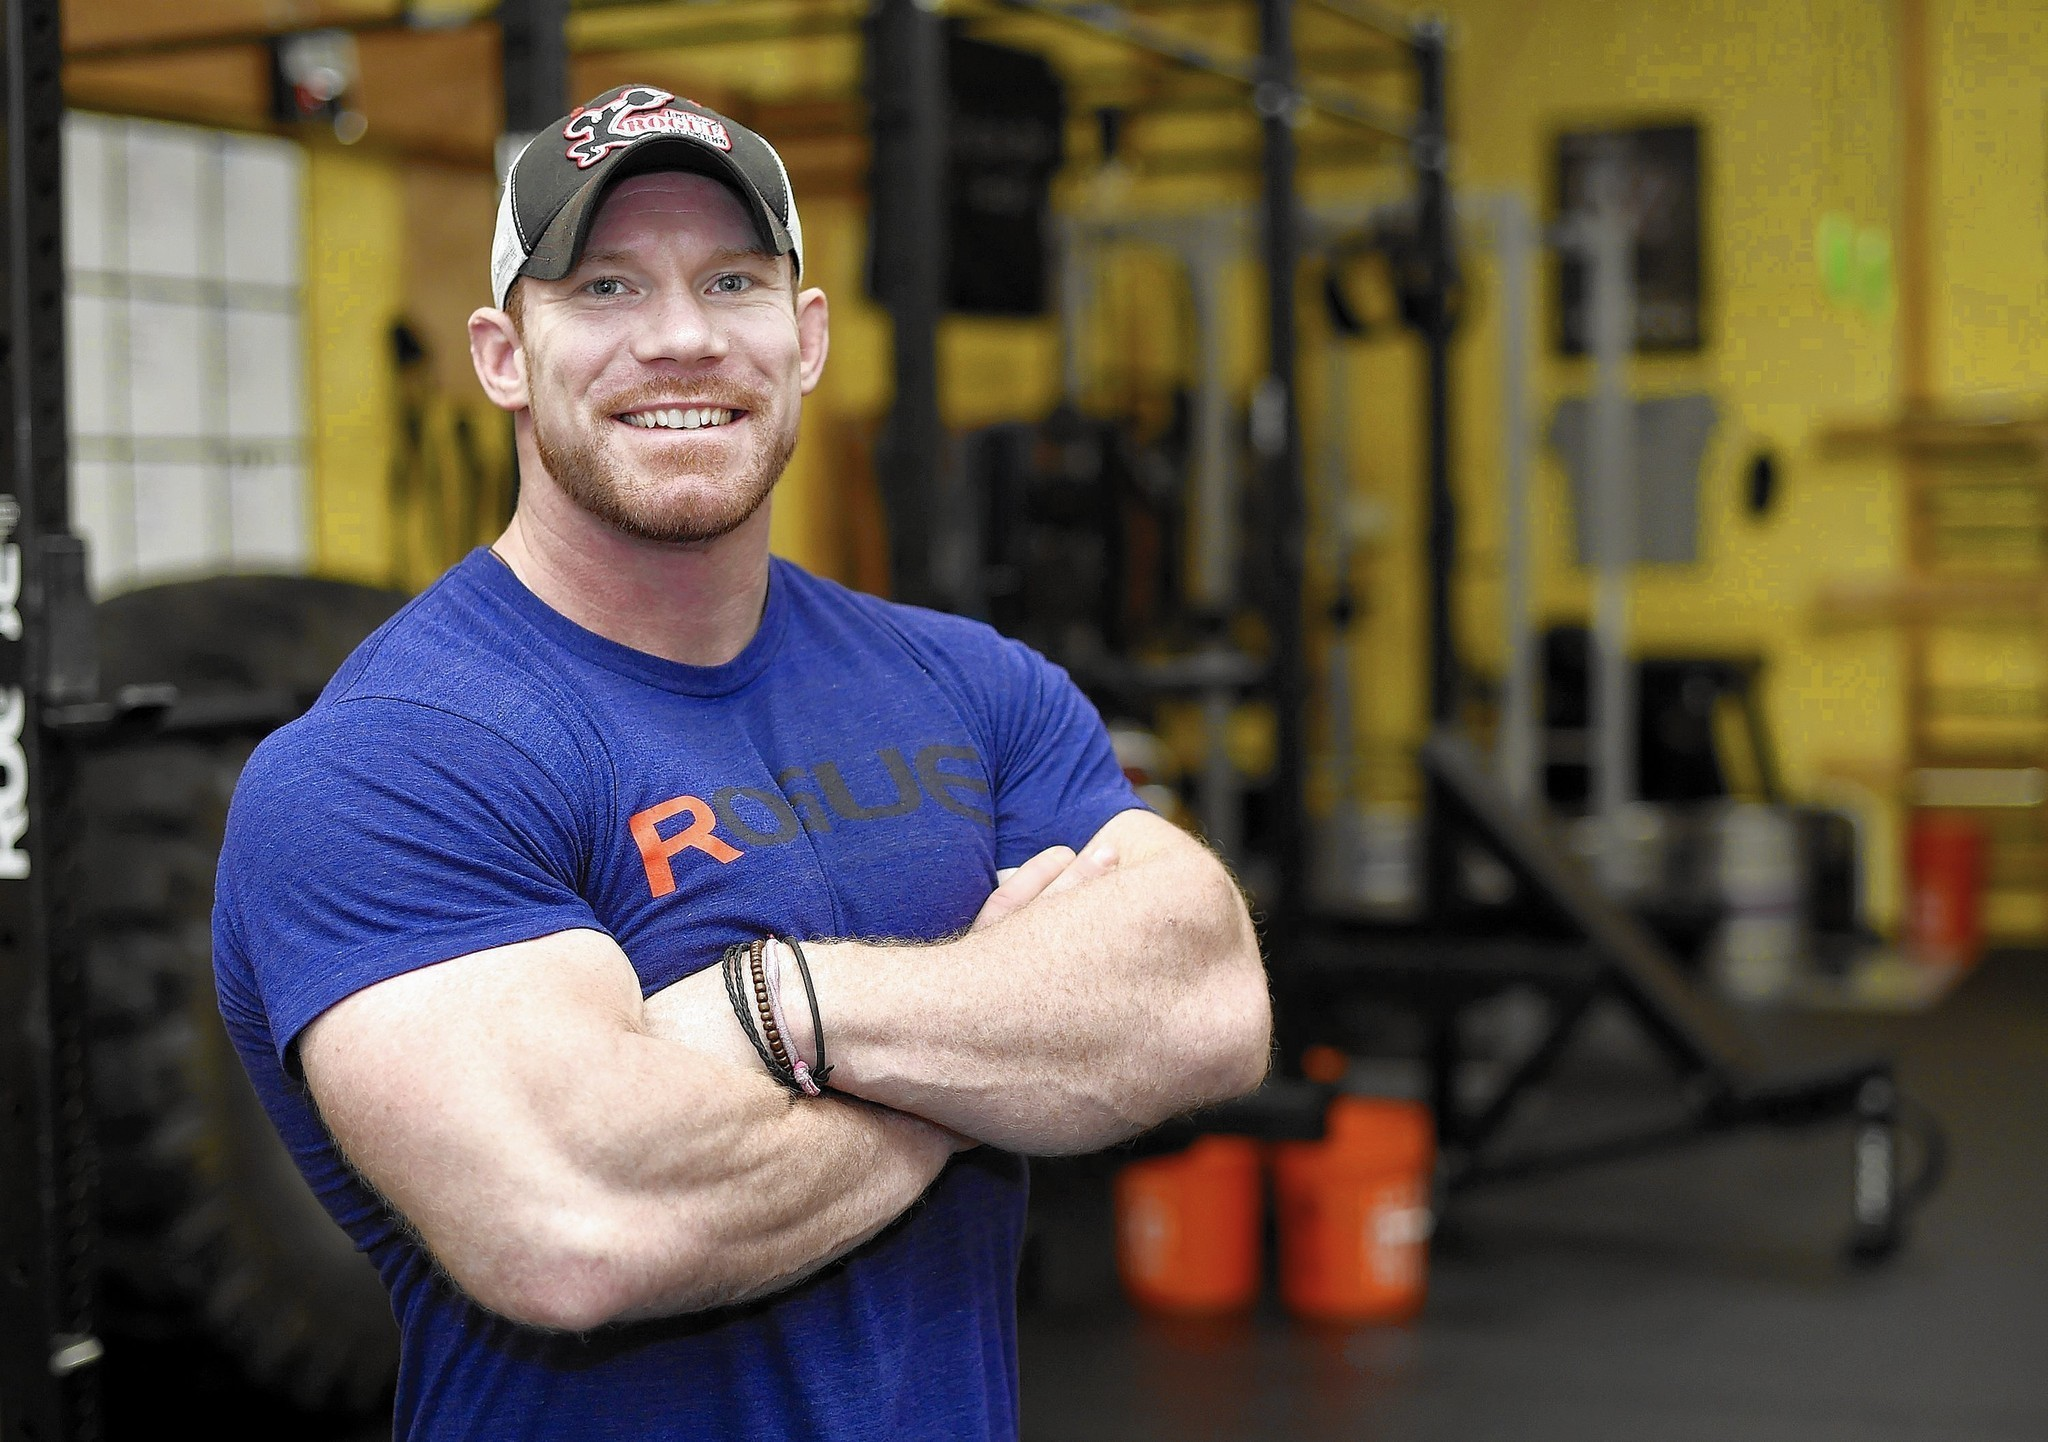 Maryland's Strongest Man: Back-to-back champ Alsruhe ...